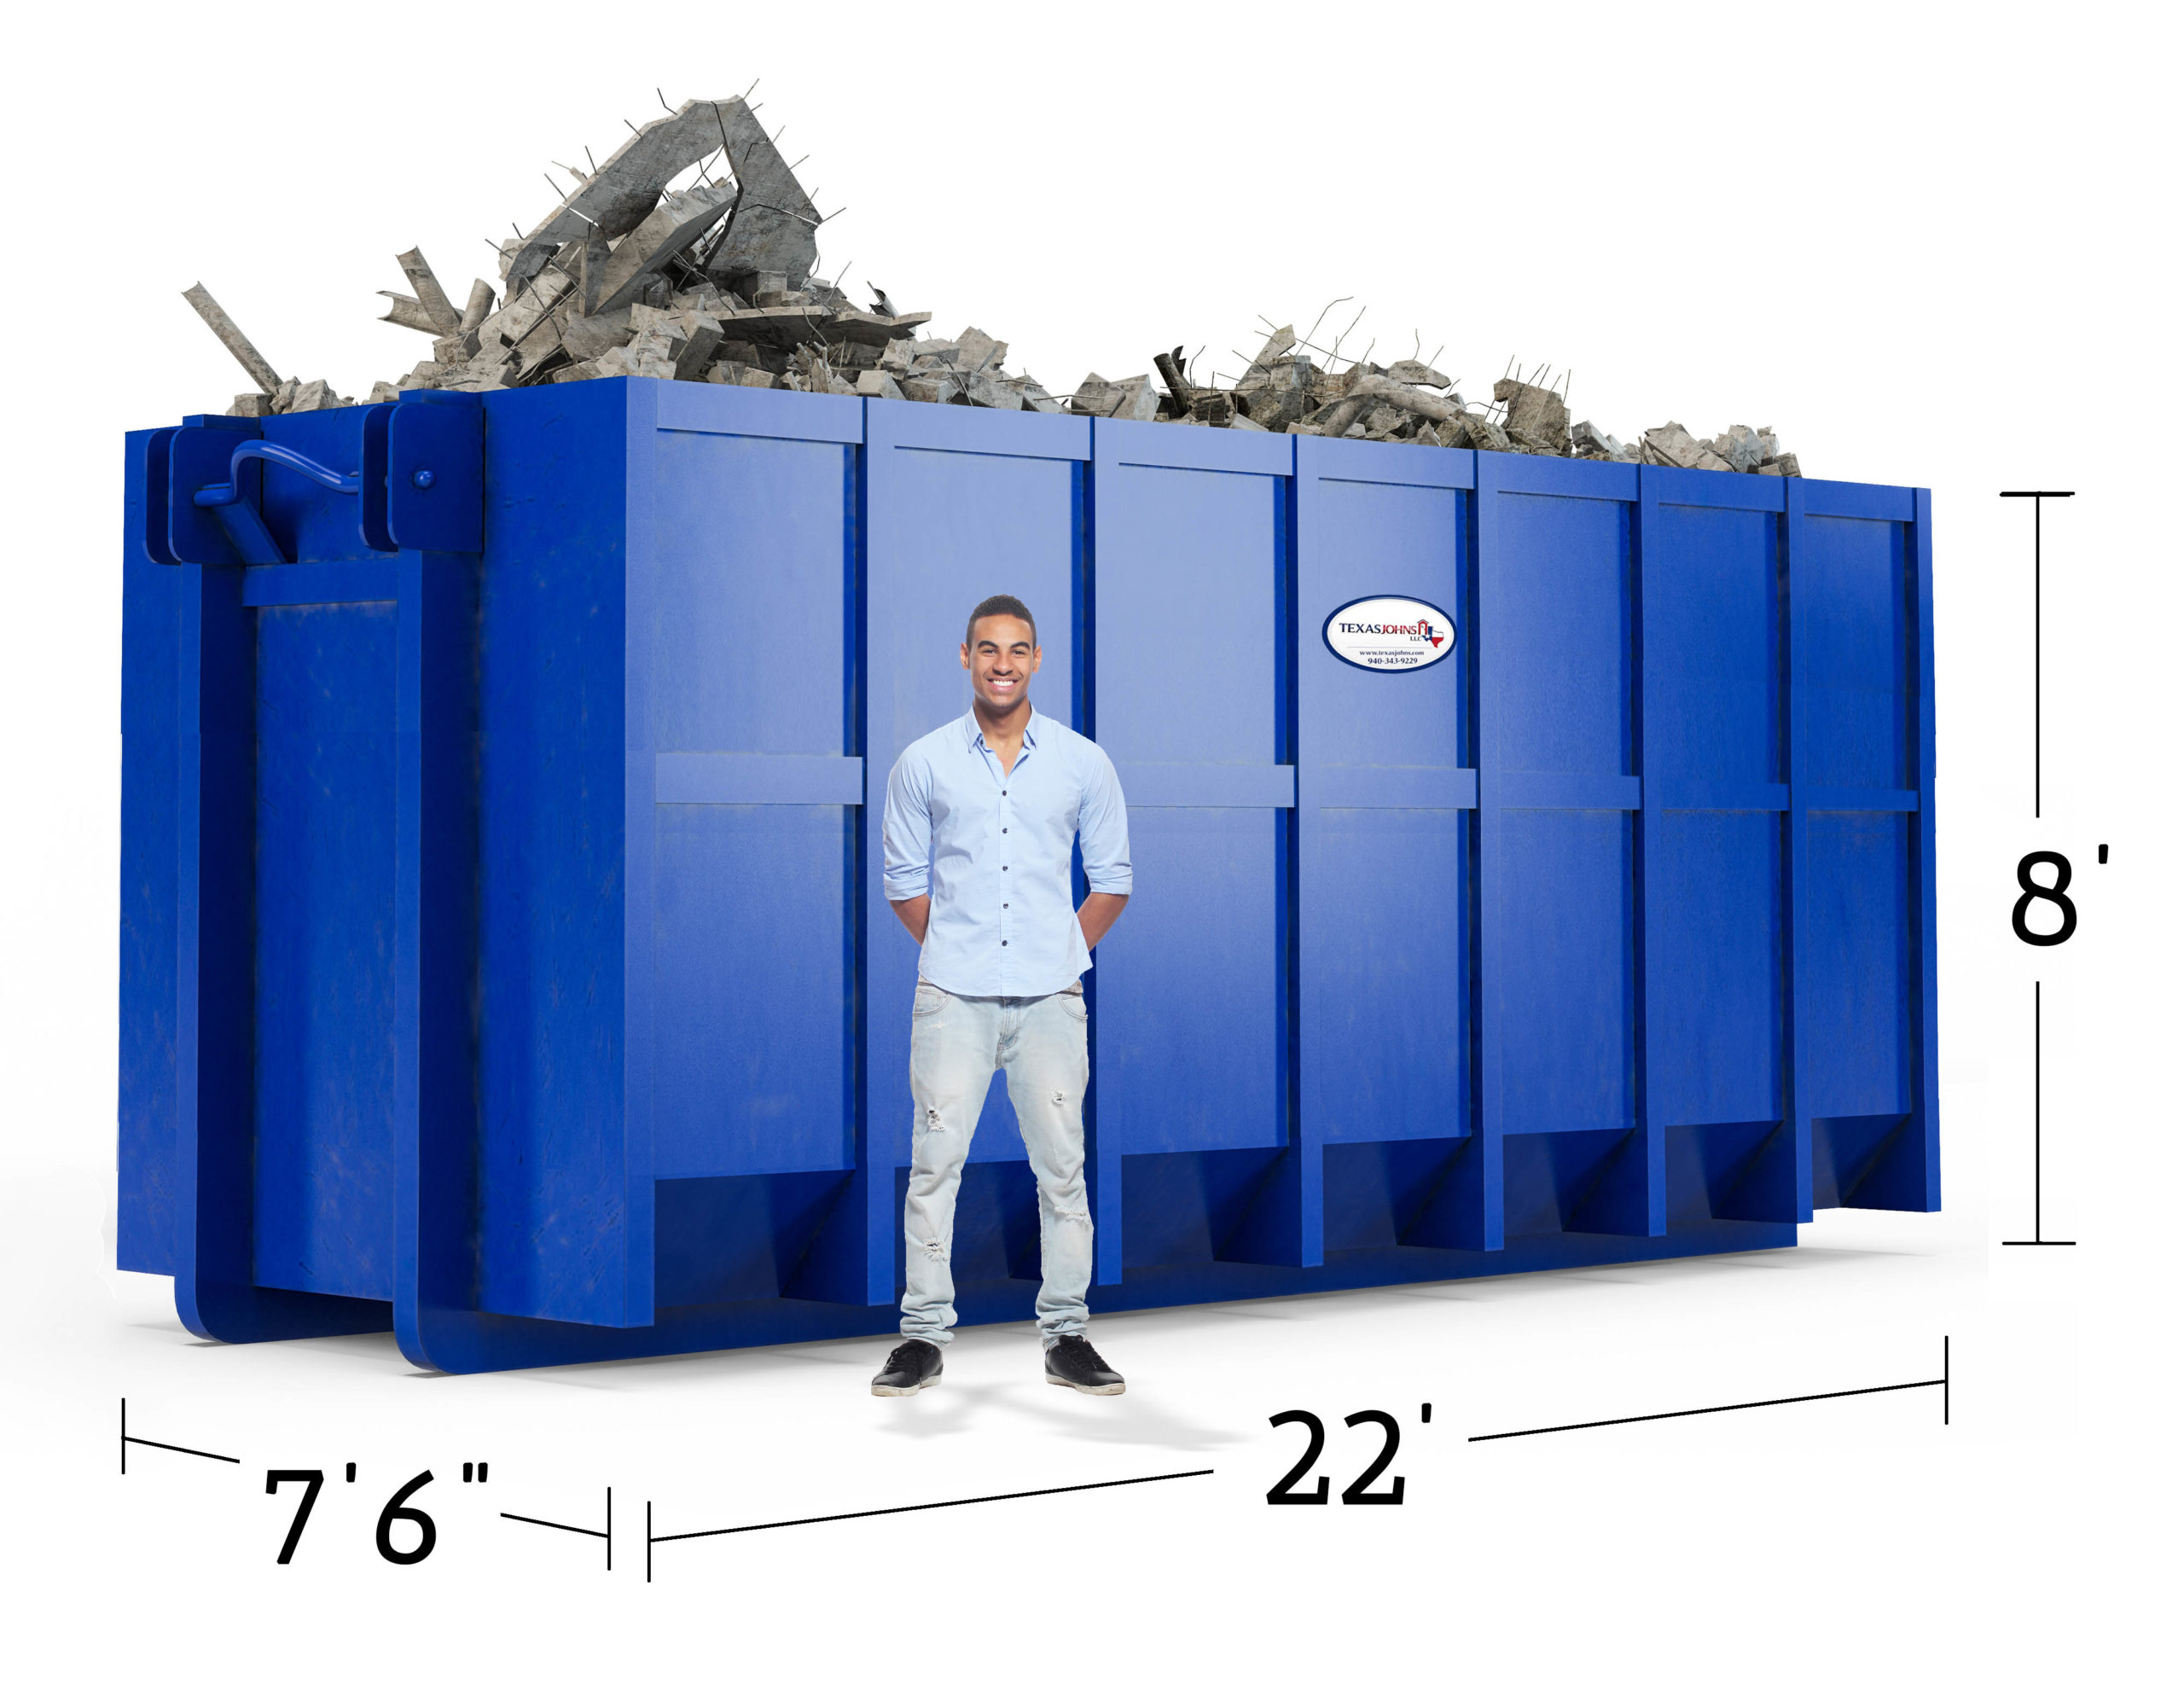 image of 7.5 x 22 x 8 dumpster